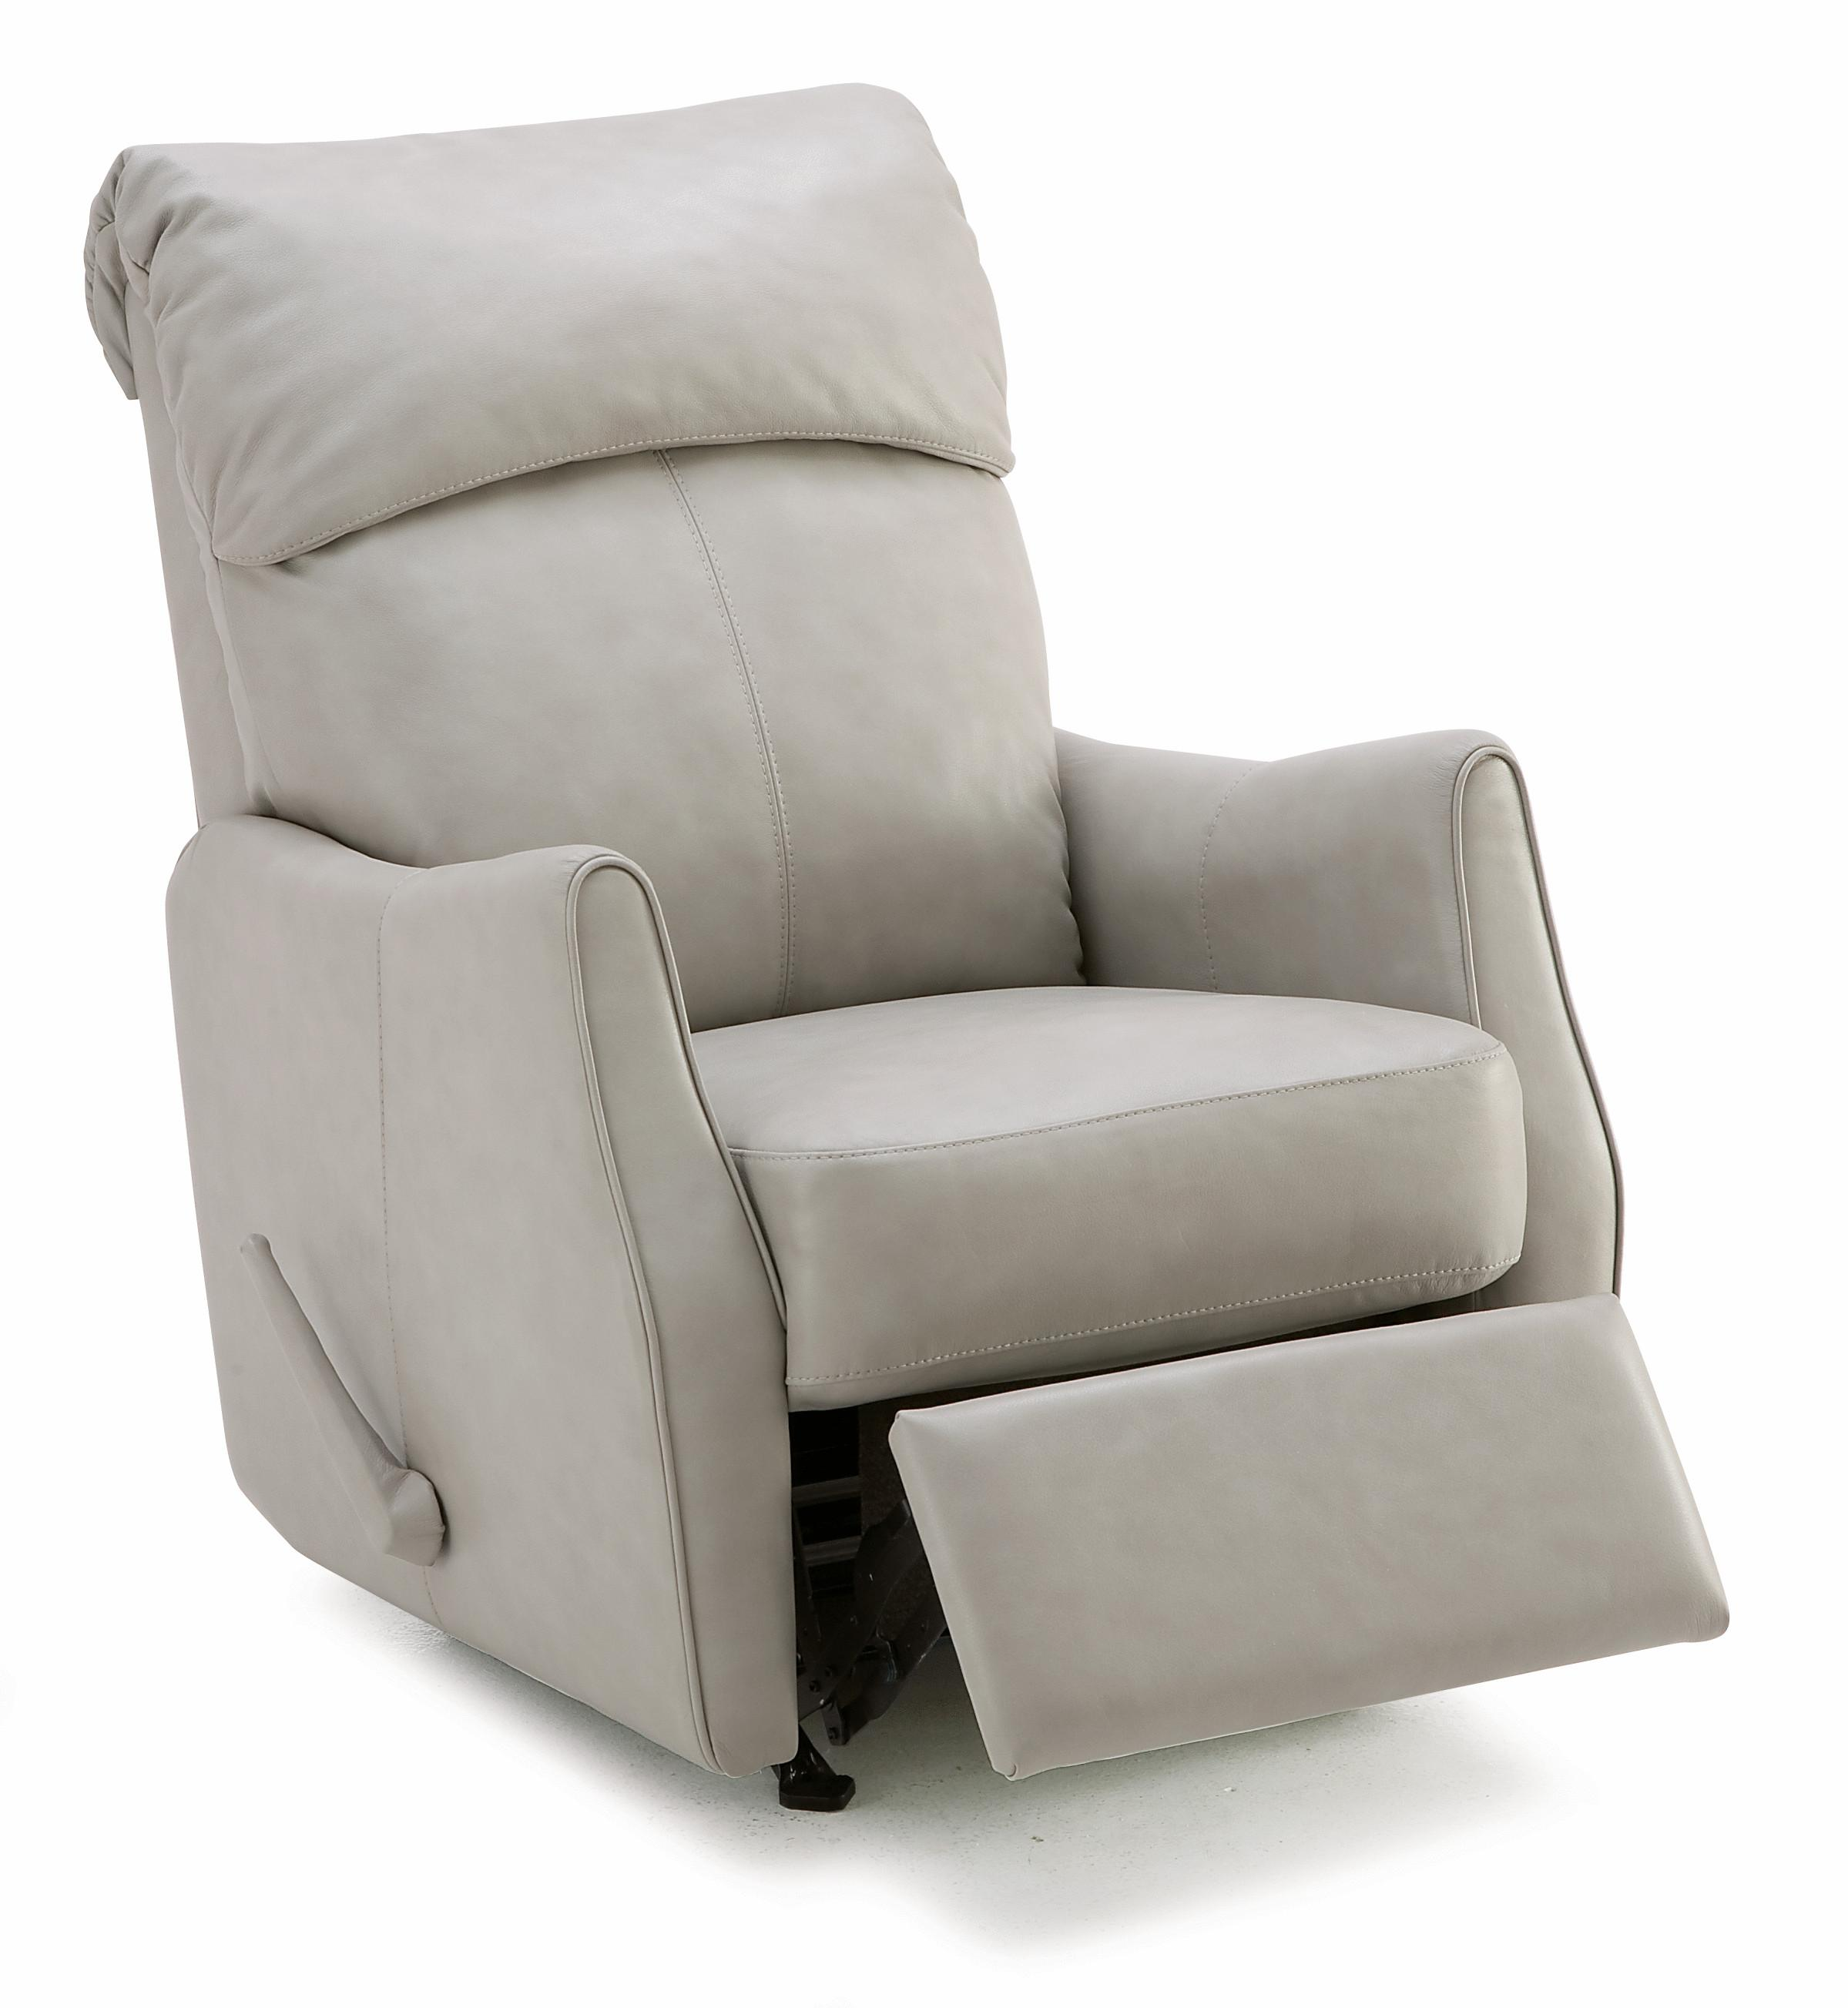 Image of: Amazing Rocking Recliner Chair